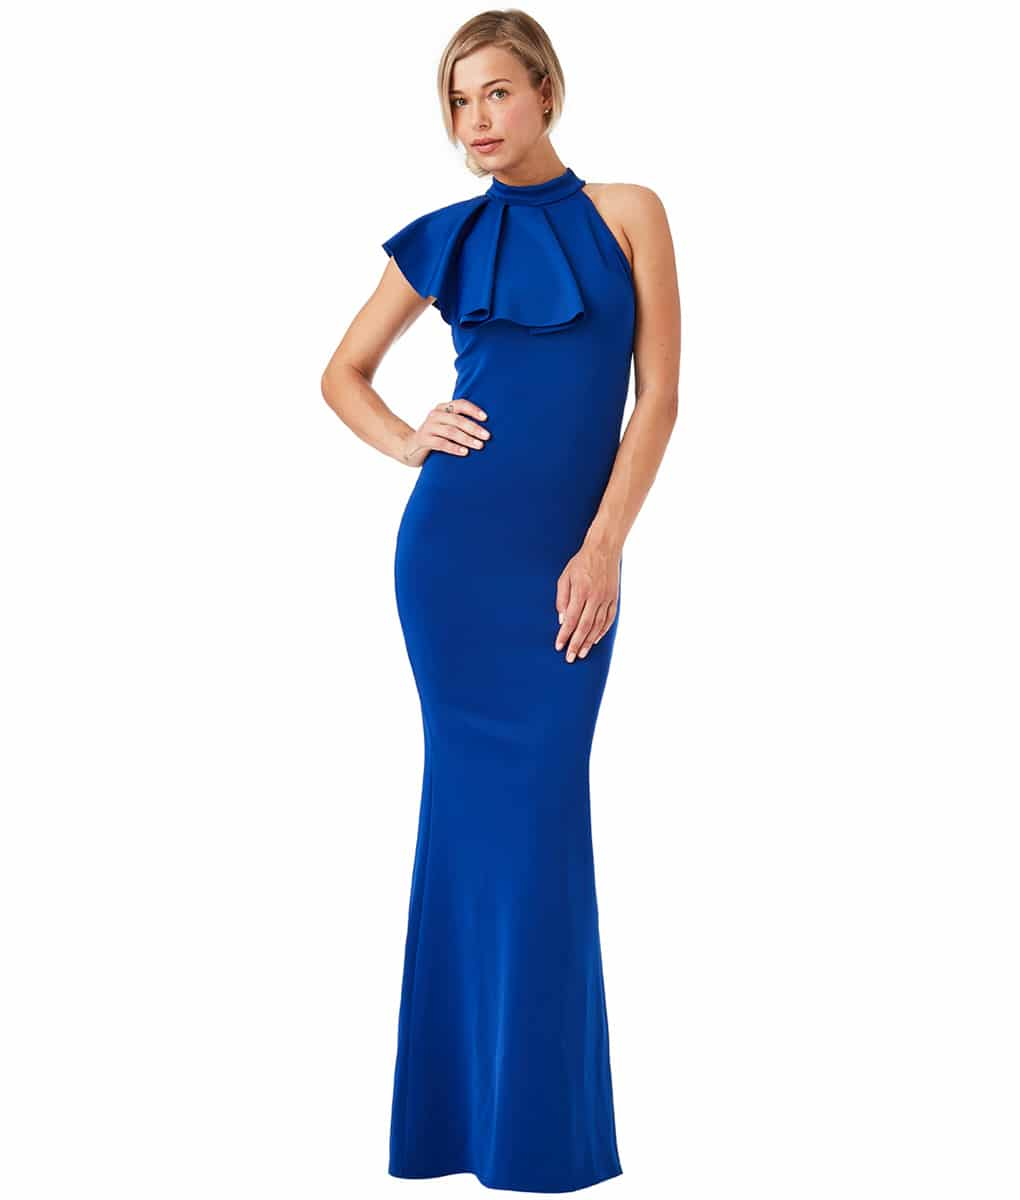 Alila-Sapphire-Ruffle-Gown-City-Goddess